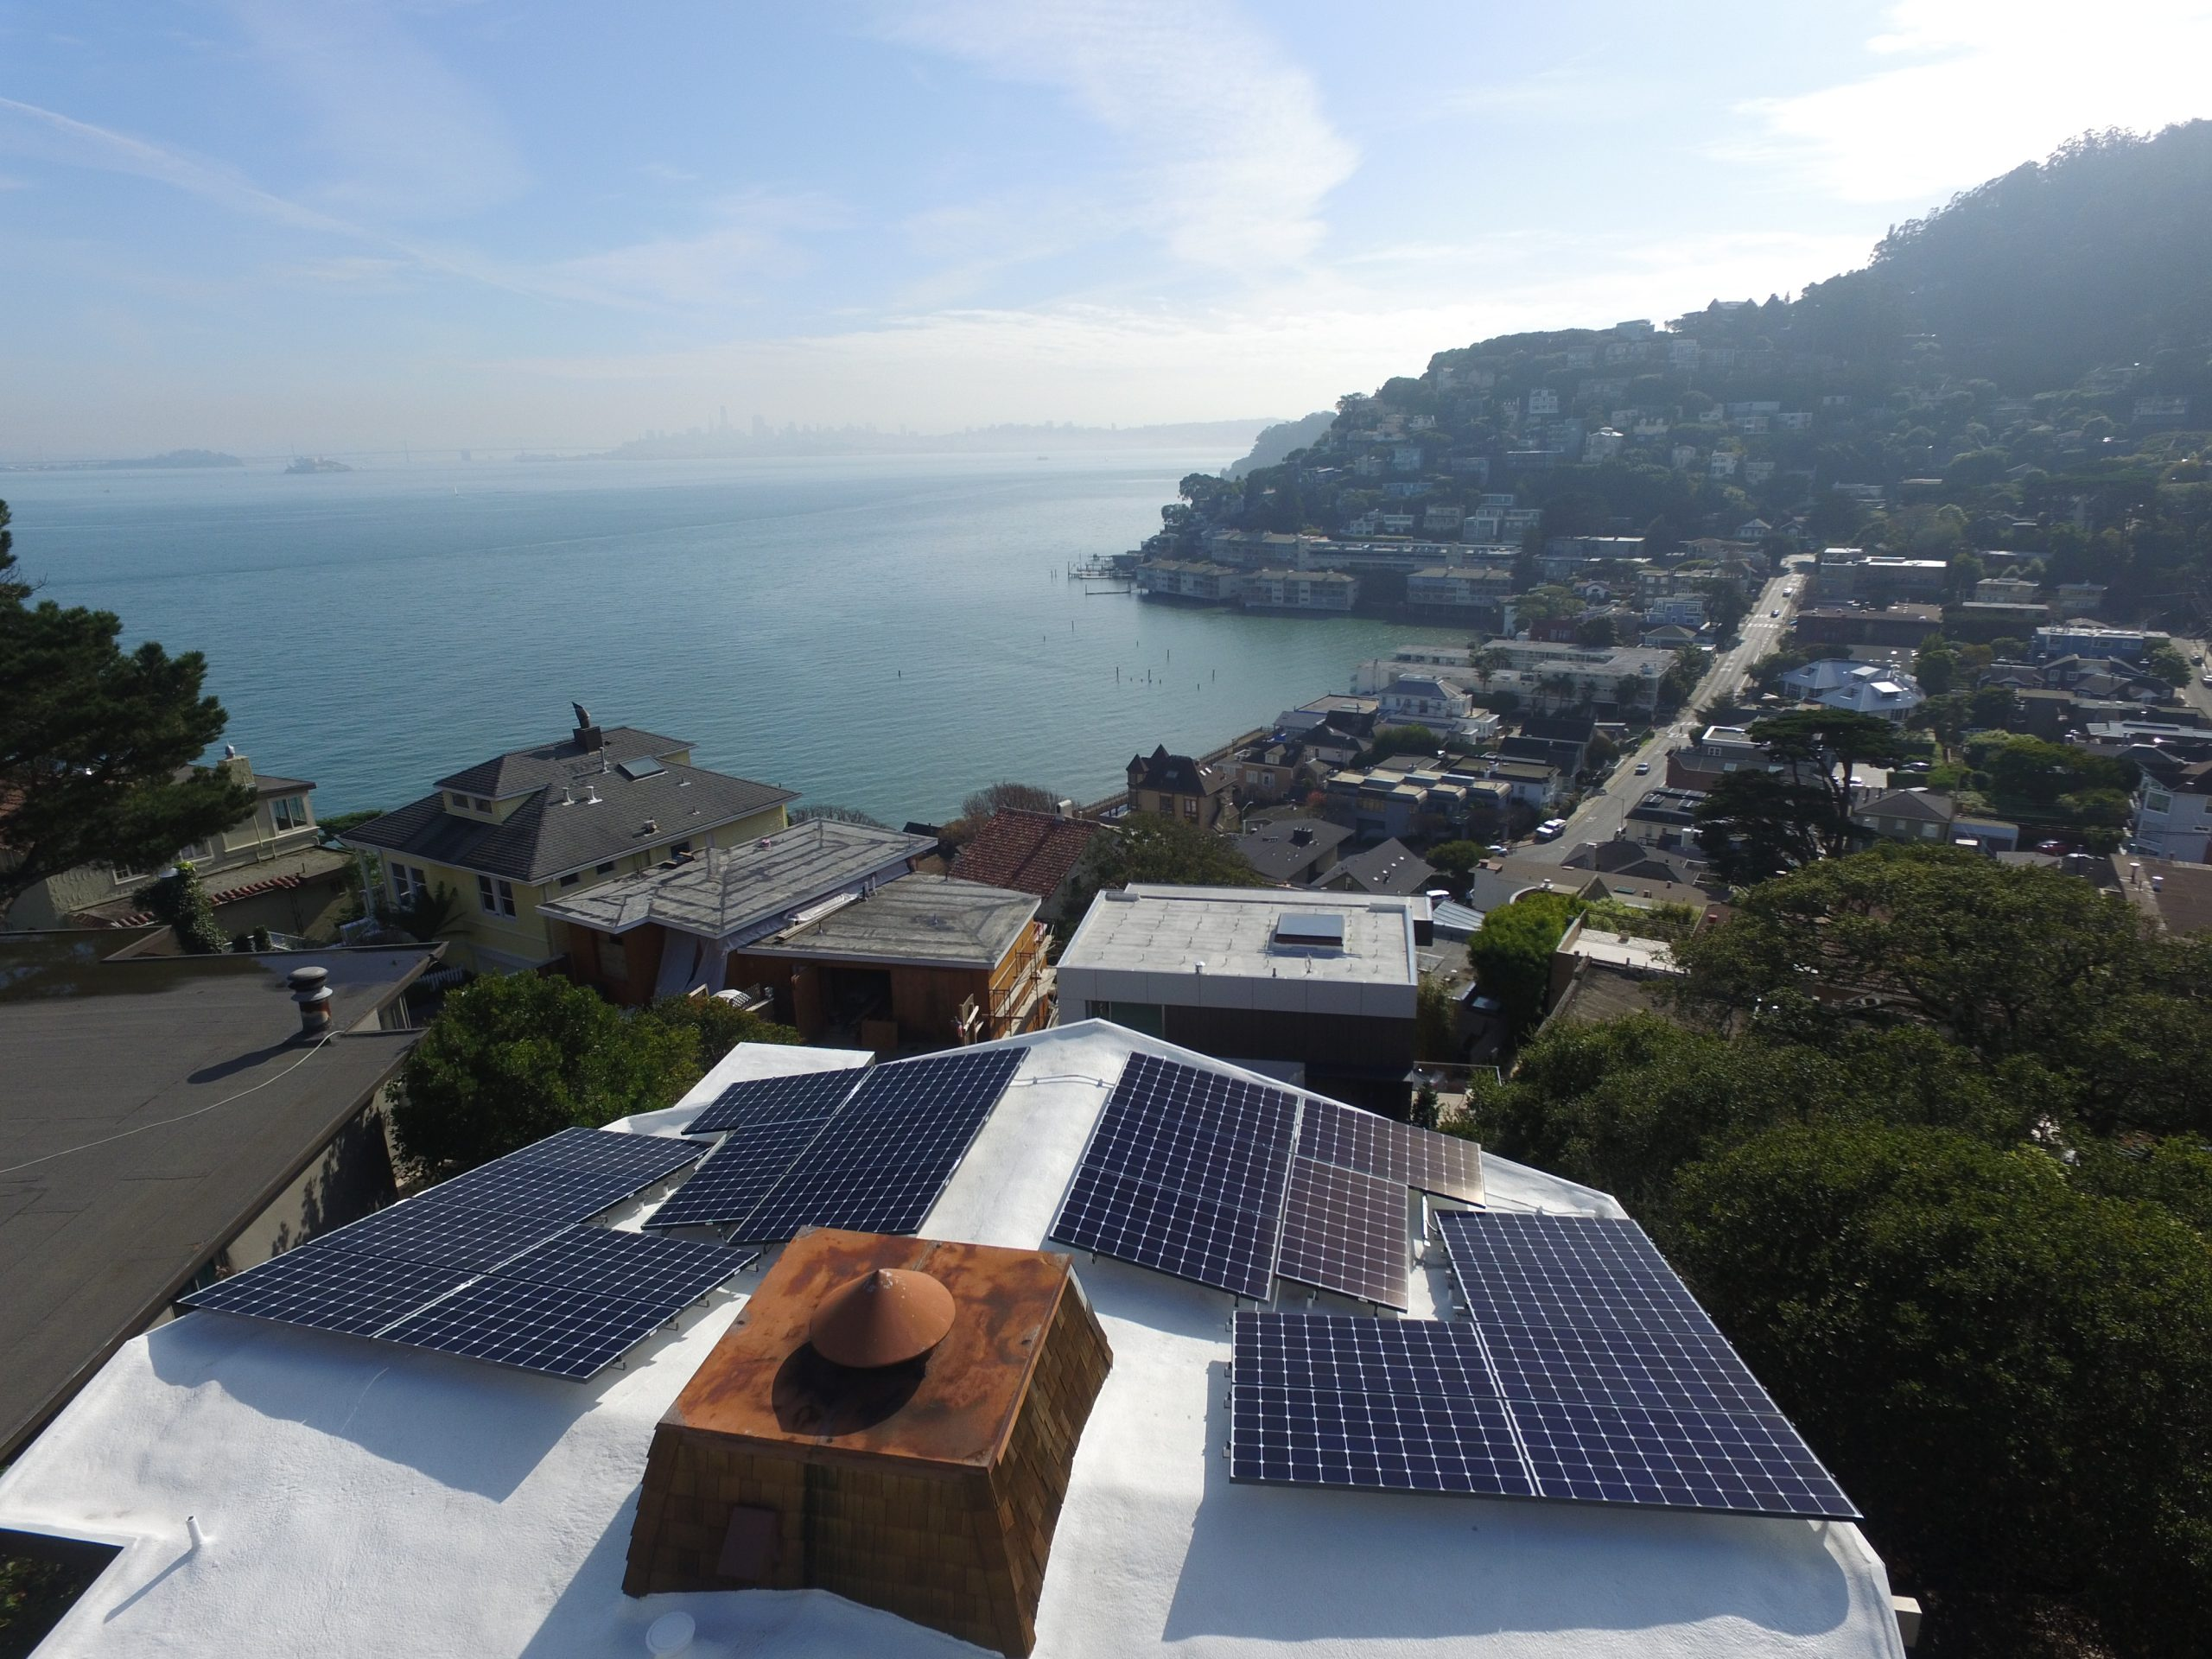 Sausalito home with rooftop solar overlooking downtown Sausalito and the water in the bay